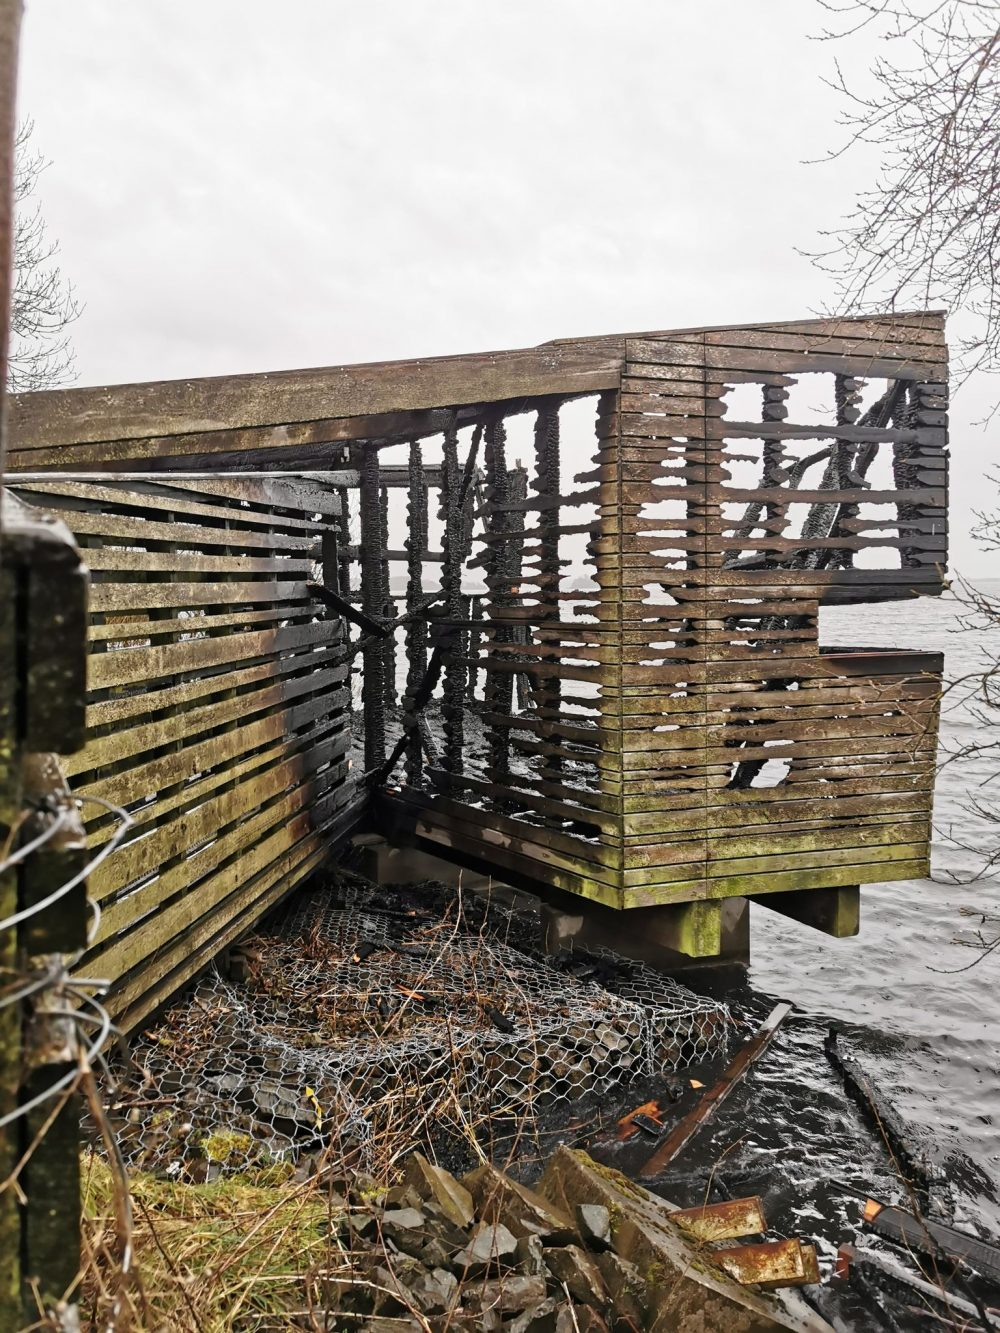 The hide after the fire  © Simon Ritchie NatureScot - Court and Crime News Scotland